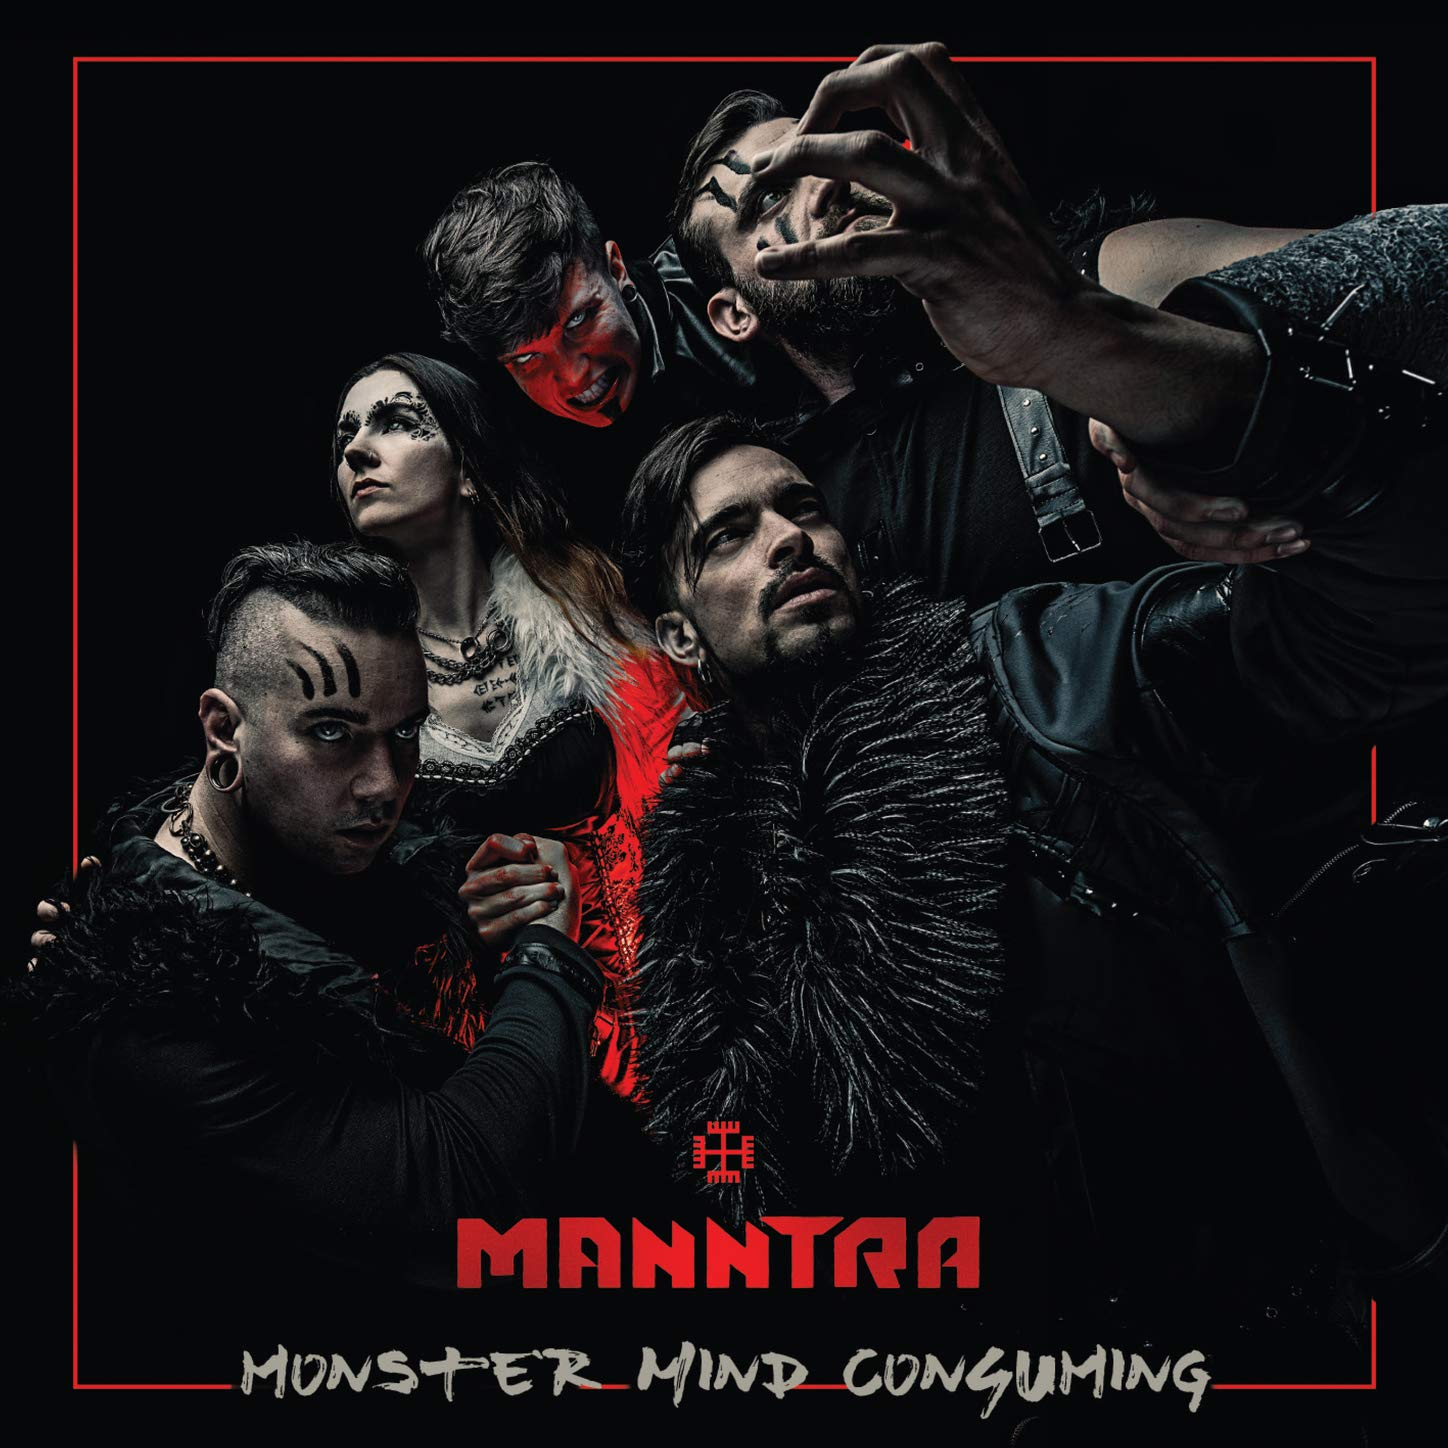 Manntra Feat. Tanzwut - Monster Mind Consuming (2021) [FLAC] Download